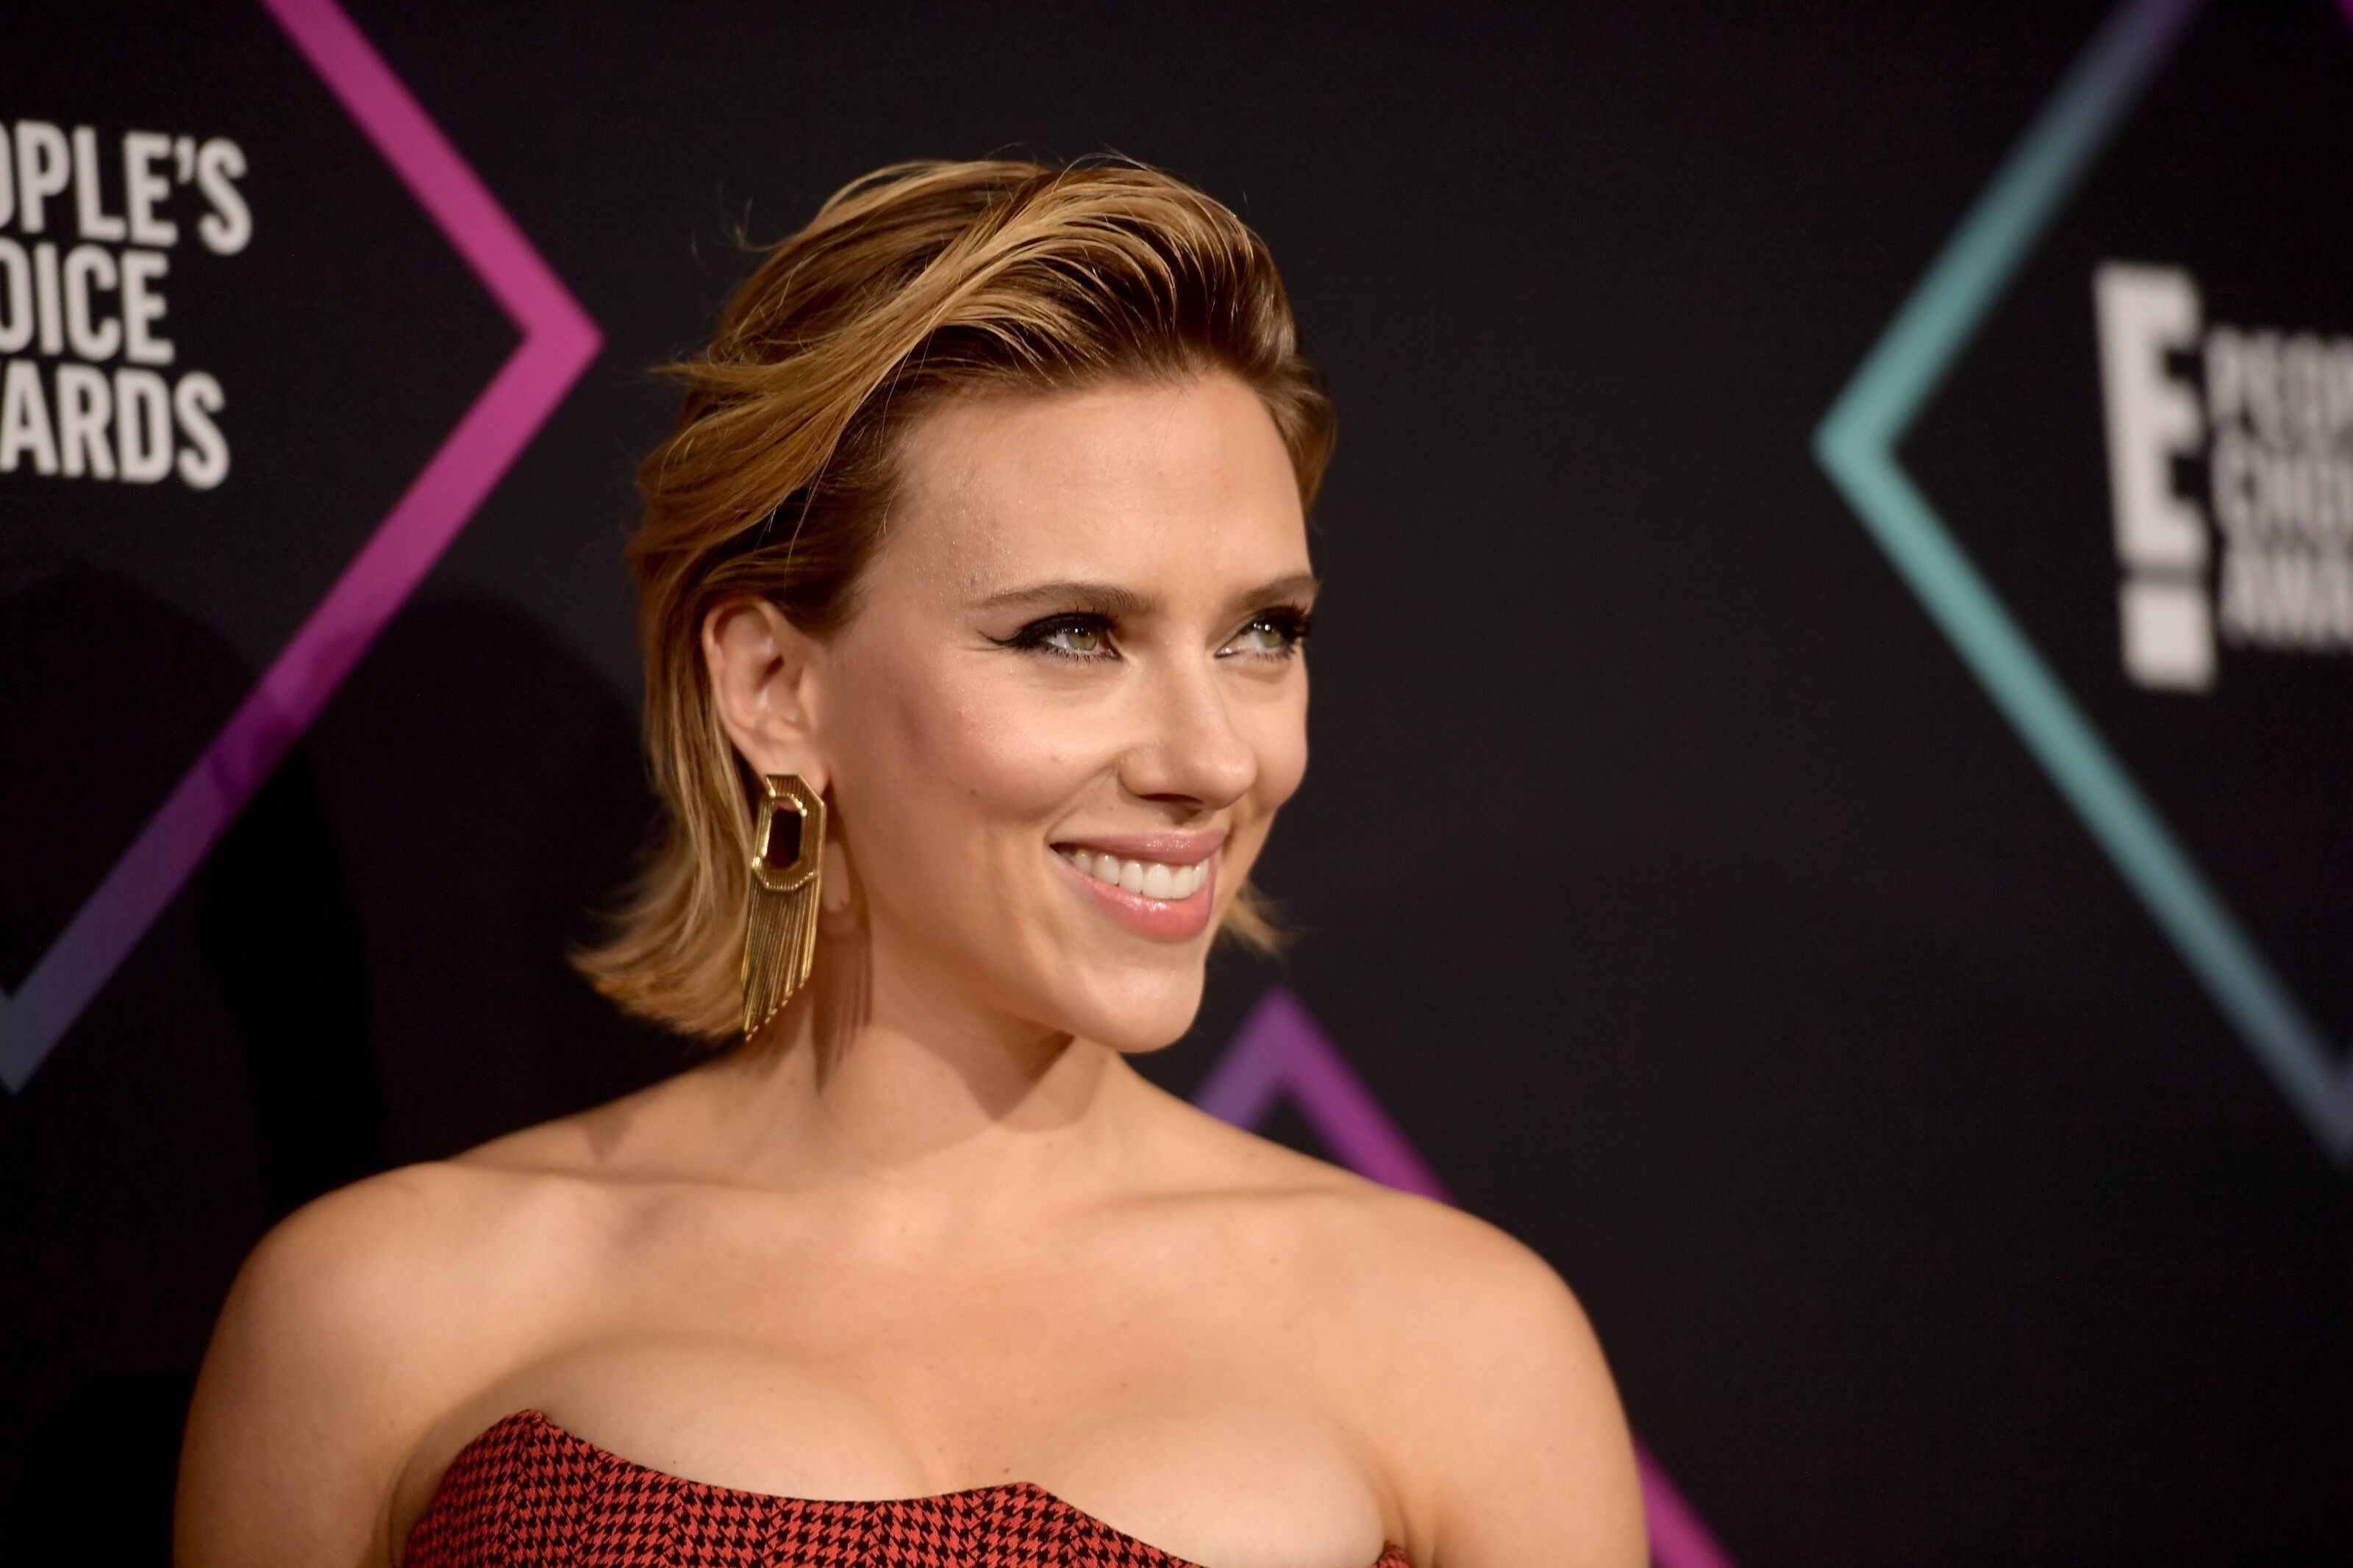 Scarlett's Johansson's comments about representation prove Hollywood has work to do